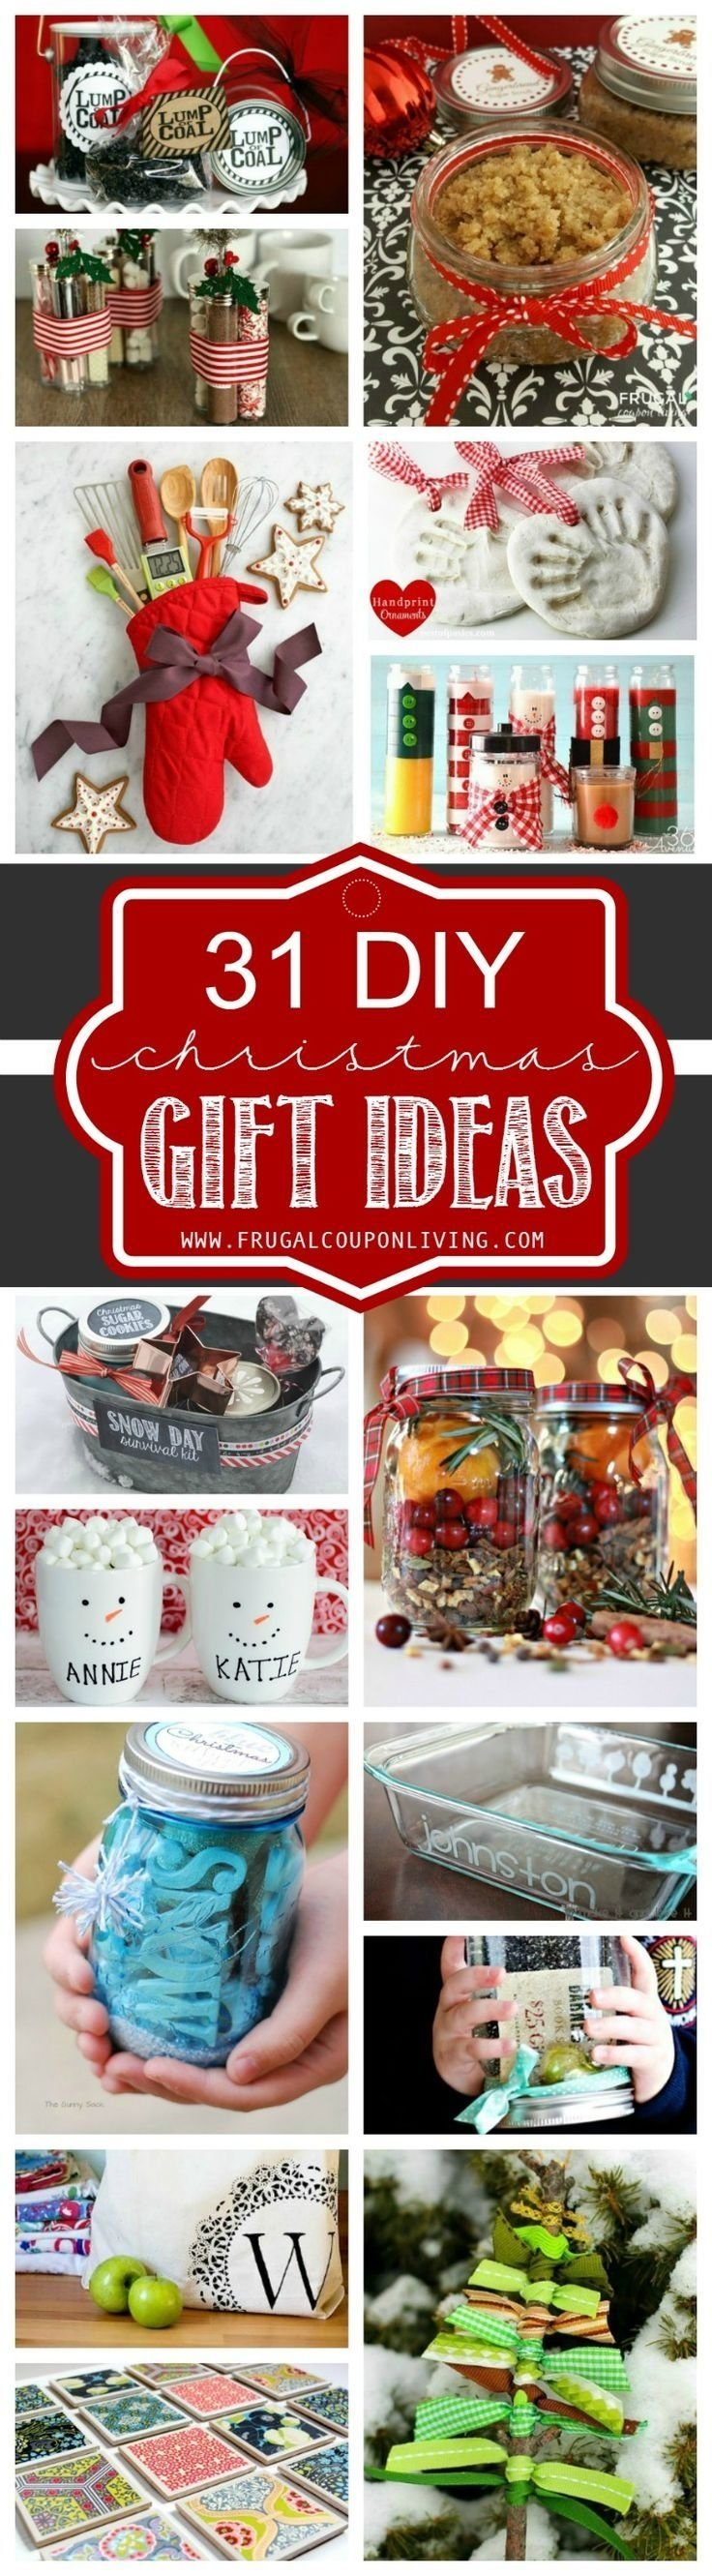 10 Great Homemade Christmas Gift Ideas For Coworkers 31 diy christmas gift ideas cadeau noel et idees cadeaux 2021